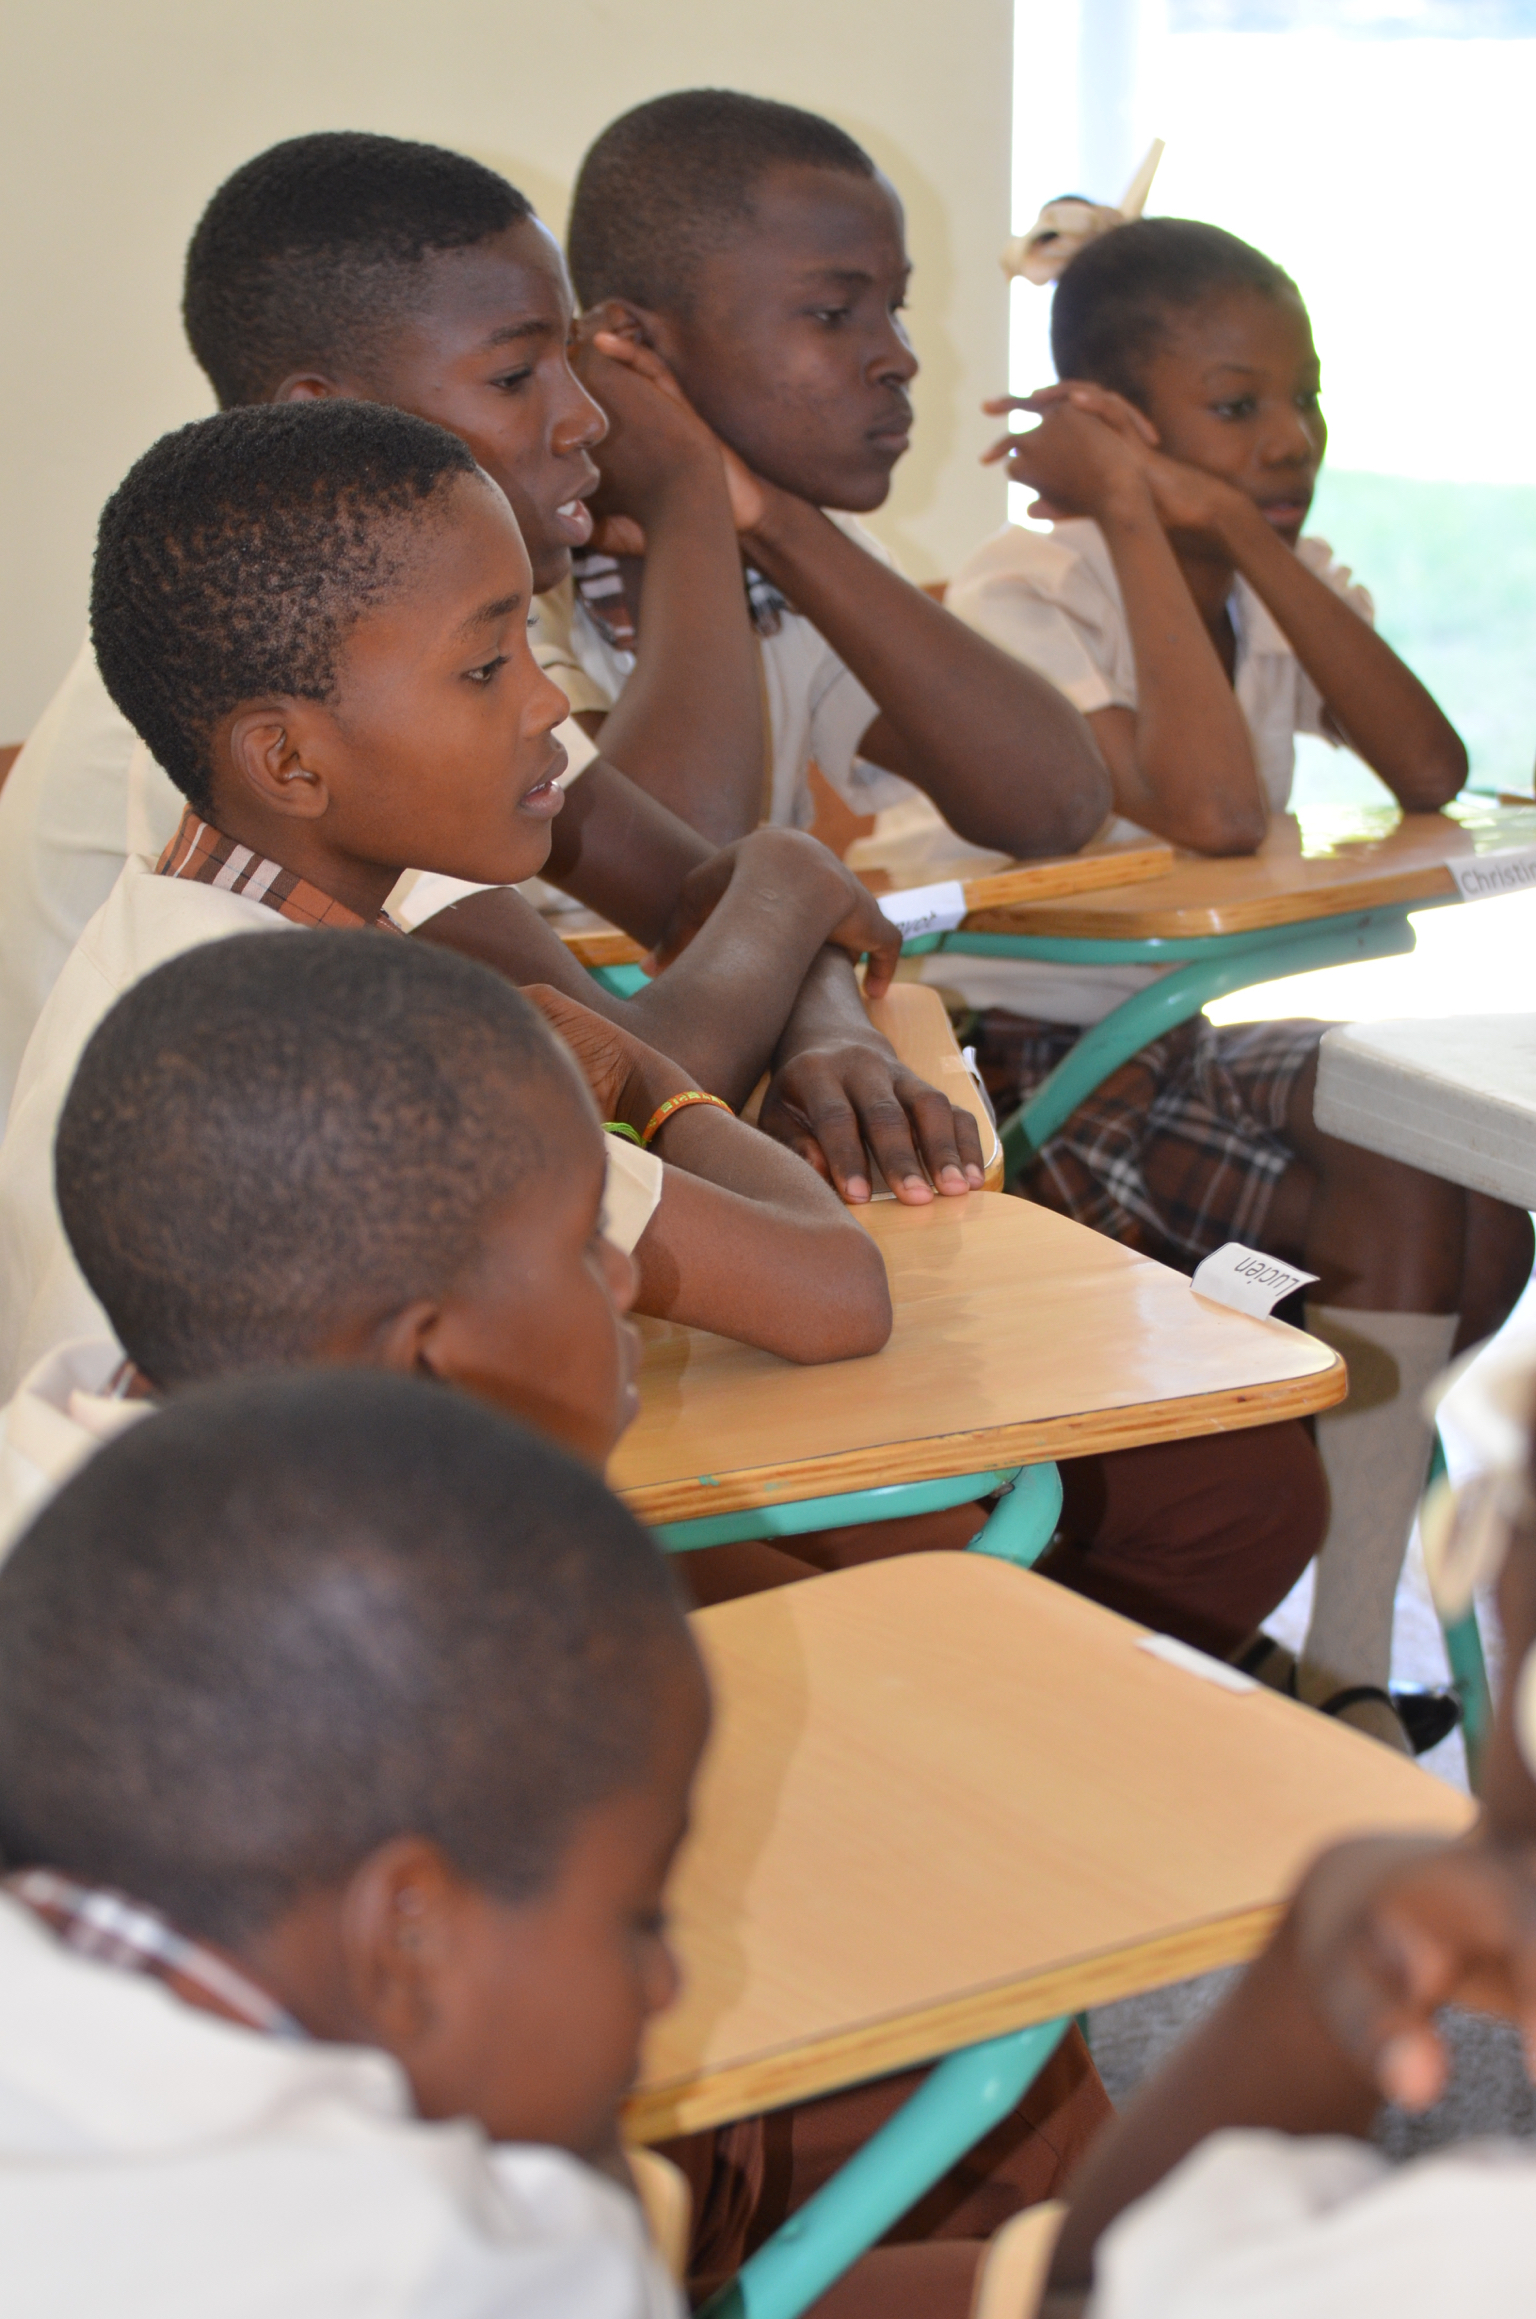 Student Sponsorship - In the fall of 2017, the Académie Chrétienne du Cap Haitïen (ACCH) enrolled 14 students in its inaugural 7th grade class. In September 2018, ACCH added an additional 7th grade class, bringing total enrollment up to 39 students in two grades. Our hope is to add a new 7th grade class every year for the next five years until the school consists of grades 7 to 13 with up to 25 students in each grade. Students are financially sponsored by DRM as the $500 per pupil per year cost of schooling is simply well beyond the means of Cap Haitian families. Please prayerfully consider partnering with this initiative through our student sponsorship program.The goal of this sponsorship program is to identify children who possess the skills and abilities to graduate from high school. DRM will also supplement their education by teaching community-centric vocational and leadership skills. We expect these students to give back to their communities by spreading their knowledge to others, leading to the betterment of Haiti. Please consider sponsoring an ACCH student for an entire year with either a monthly donation of $42 or a one time gift of $500.